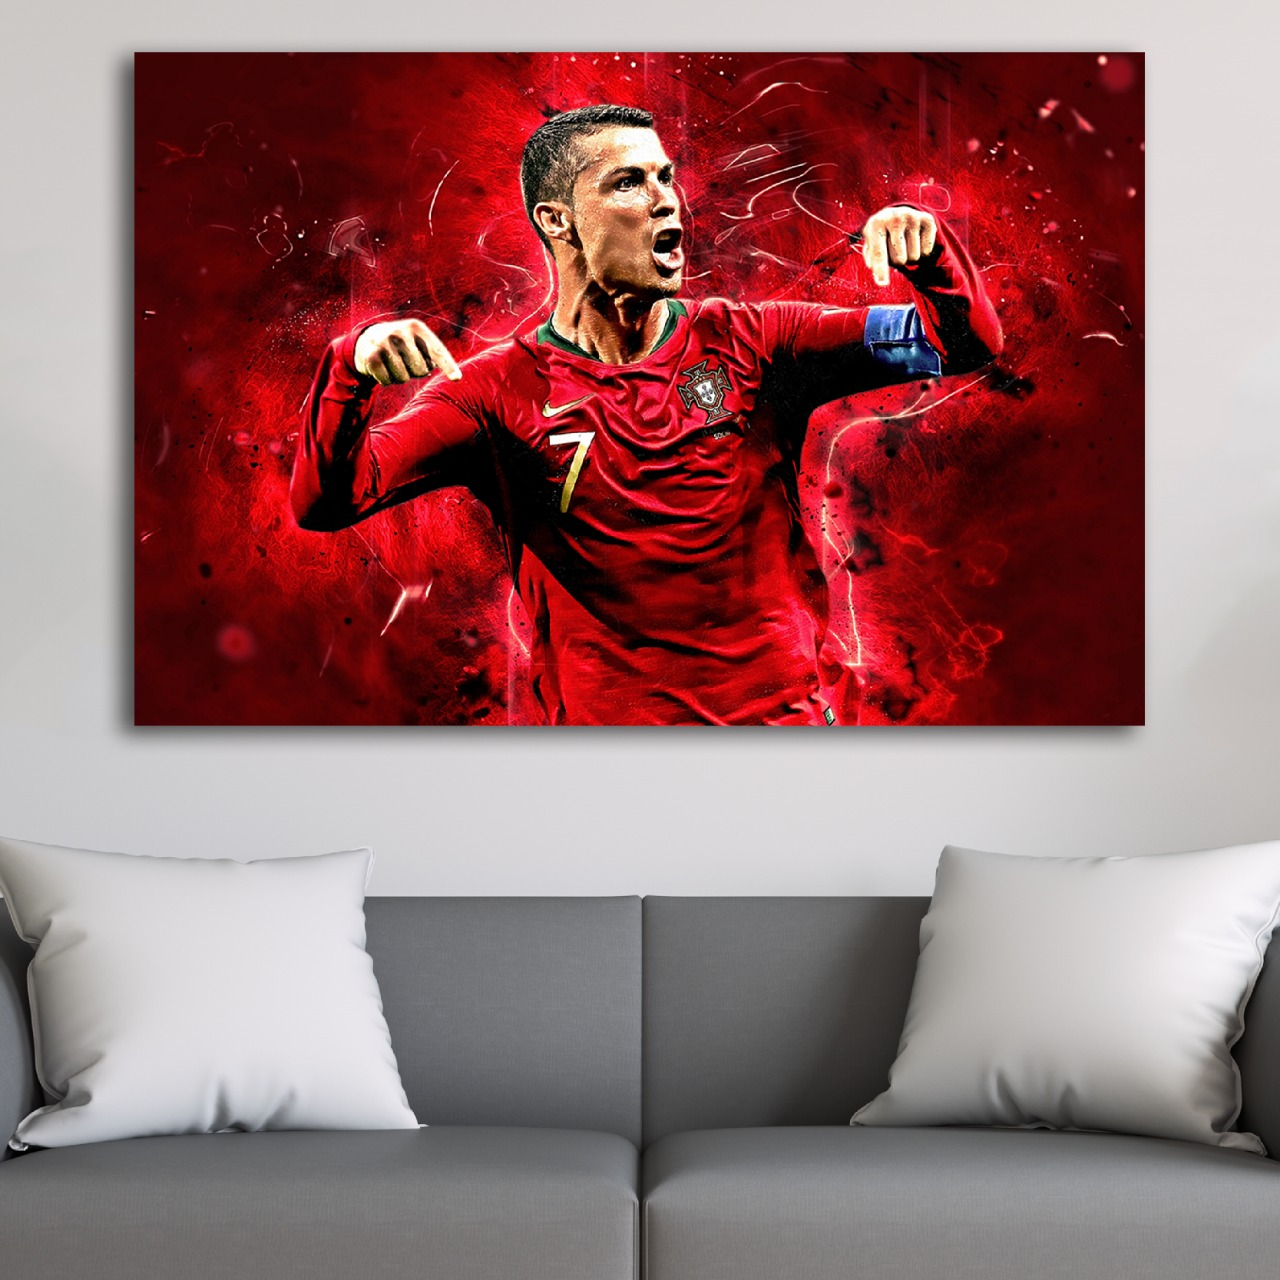 https://www.24hprint.ma/images/products_gallery_images/cr7z.jpeg